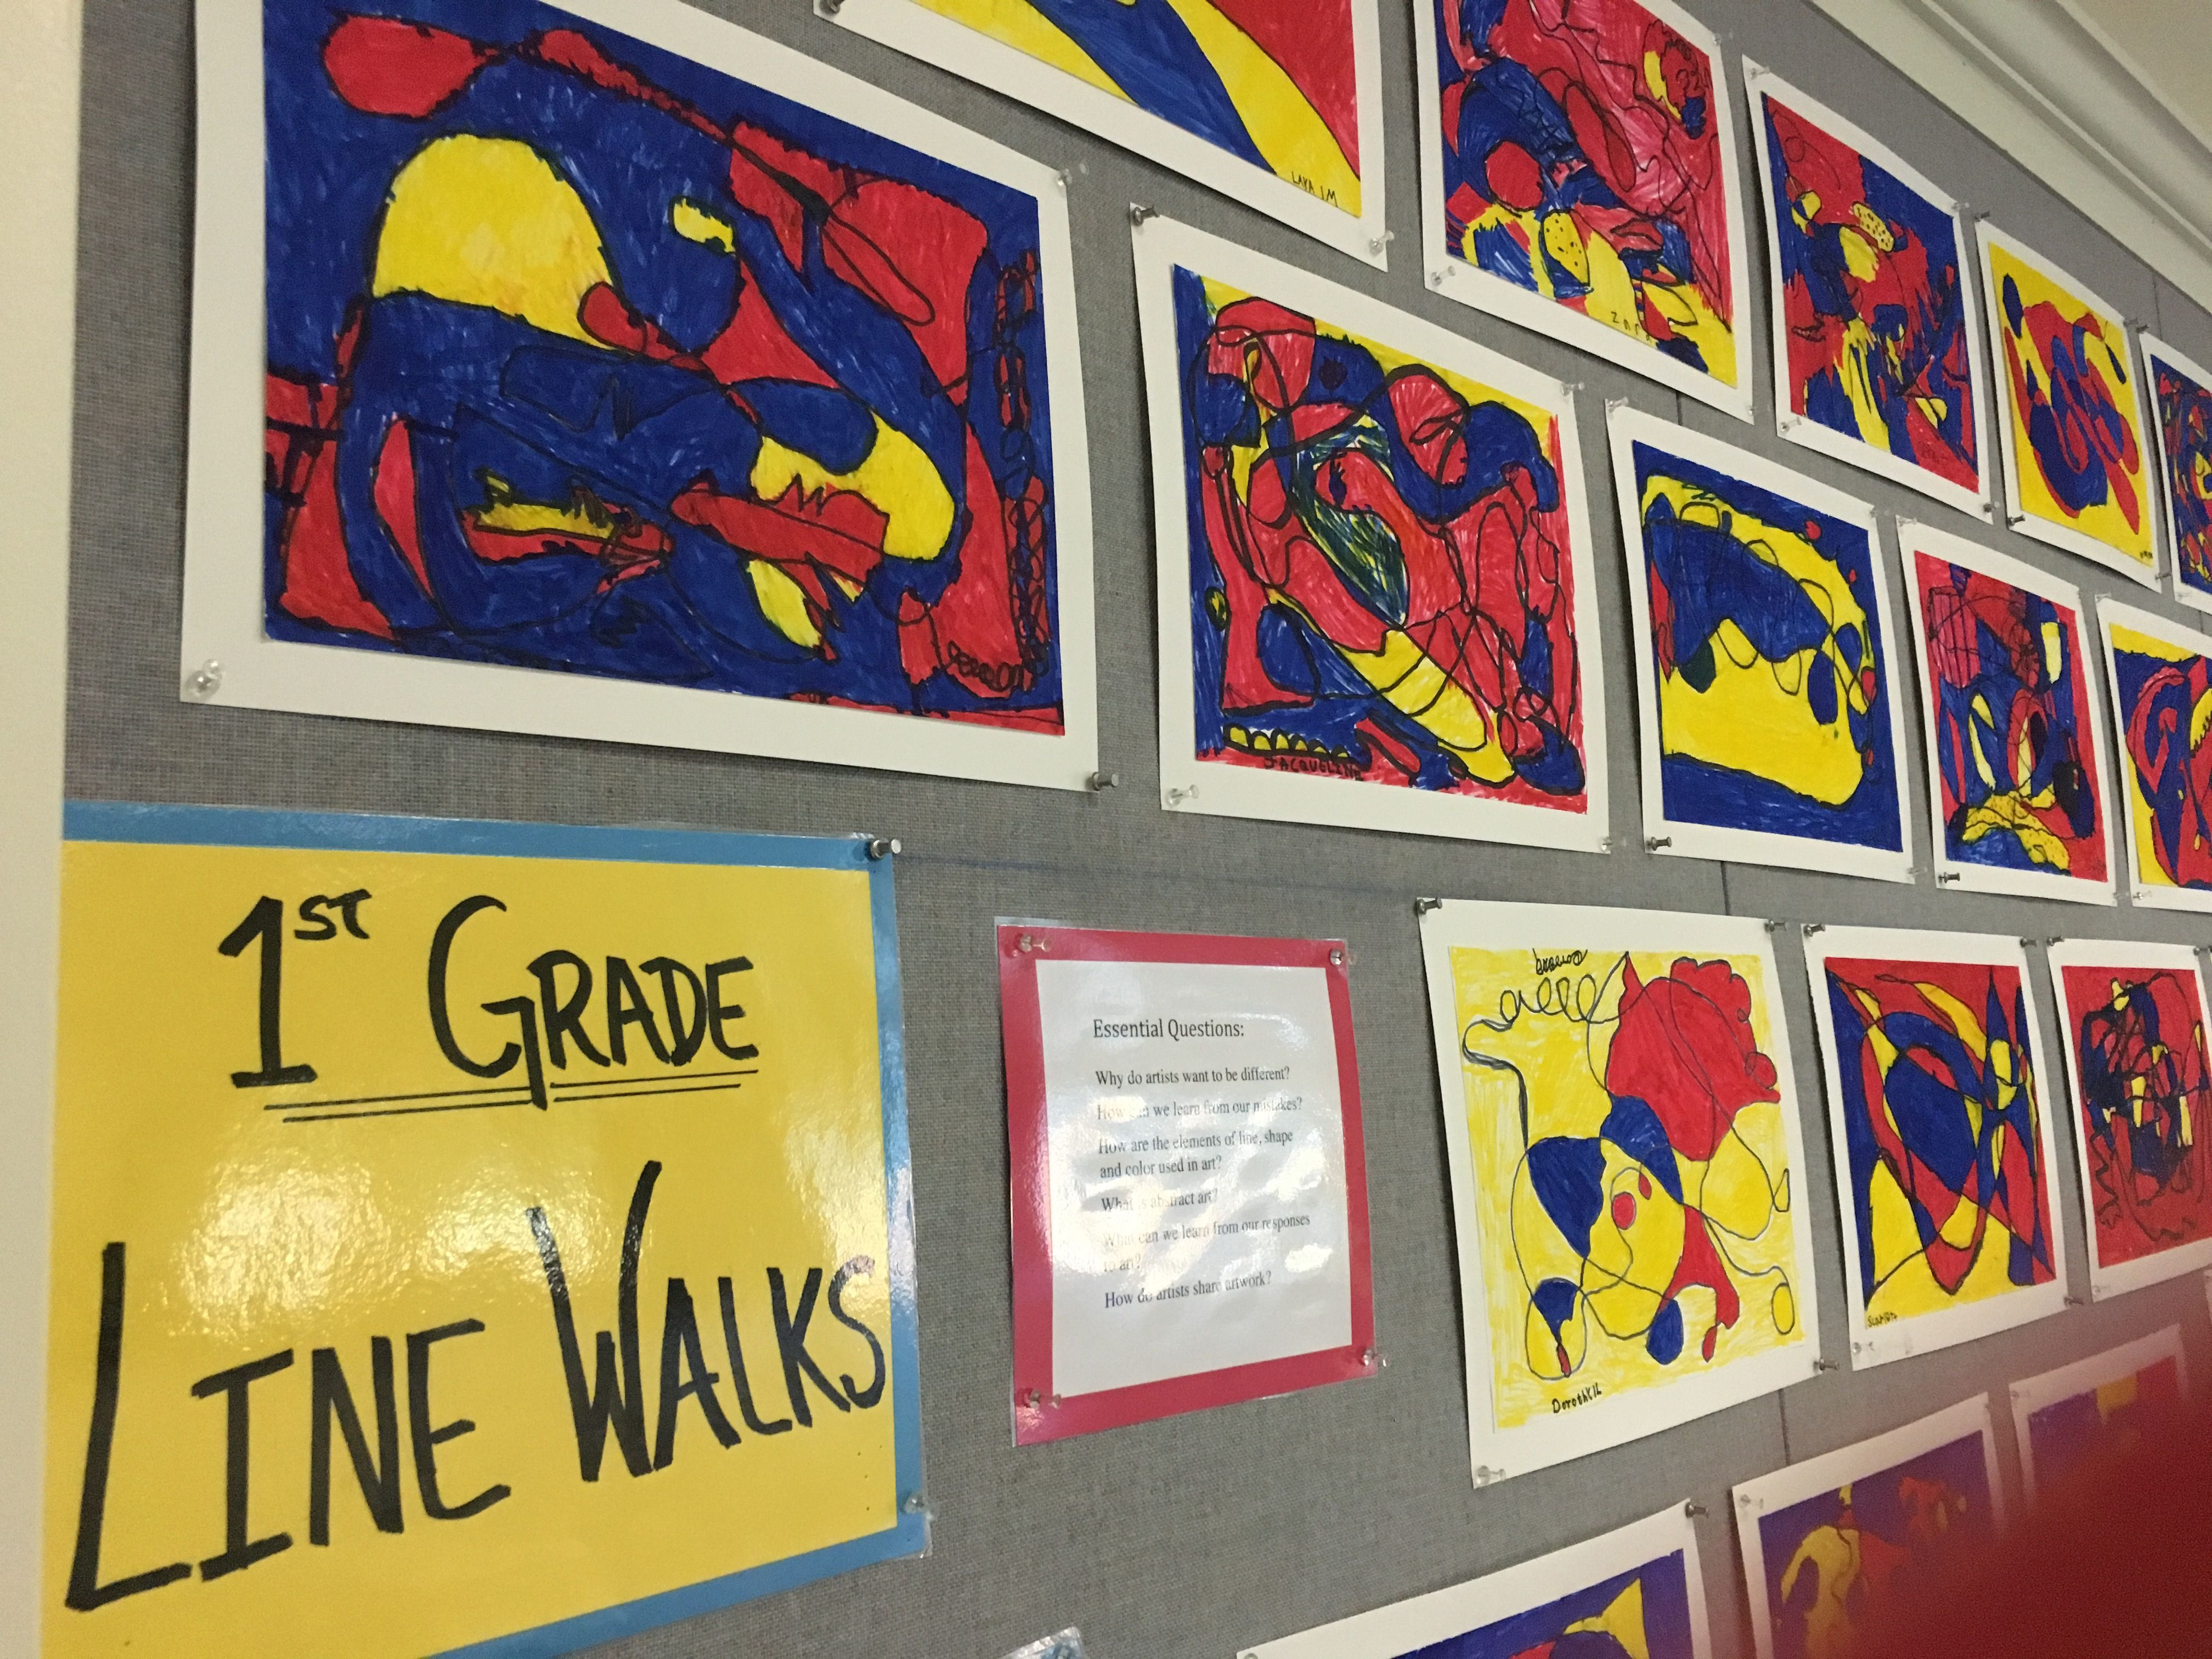 Line Walks  - 1st Grade